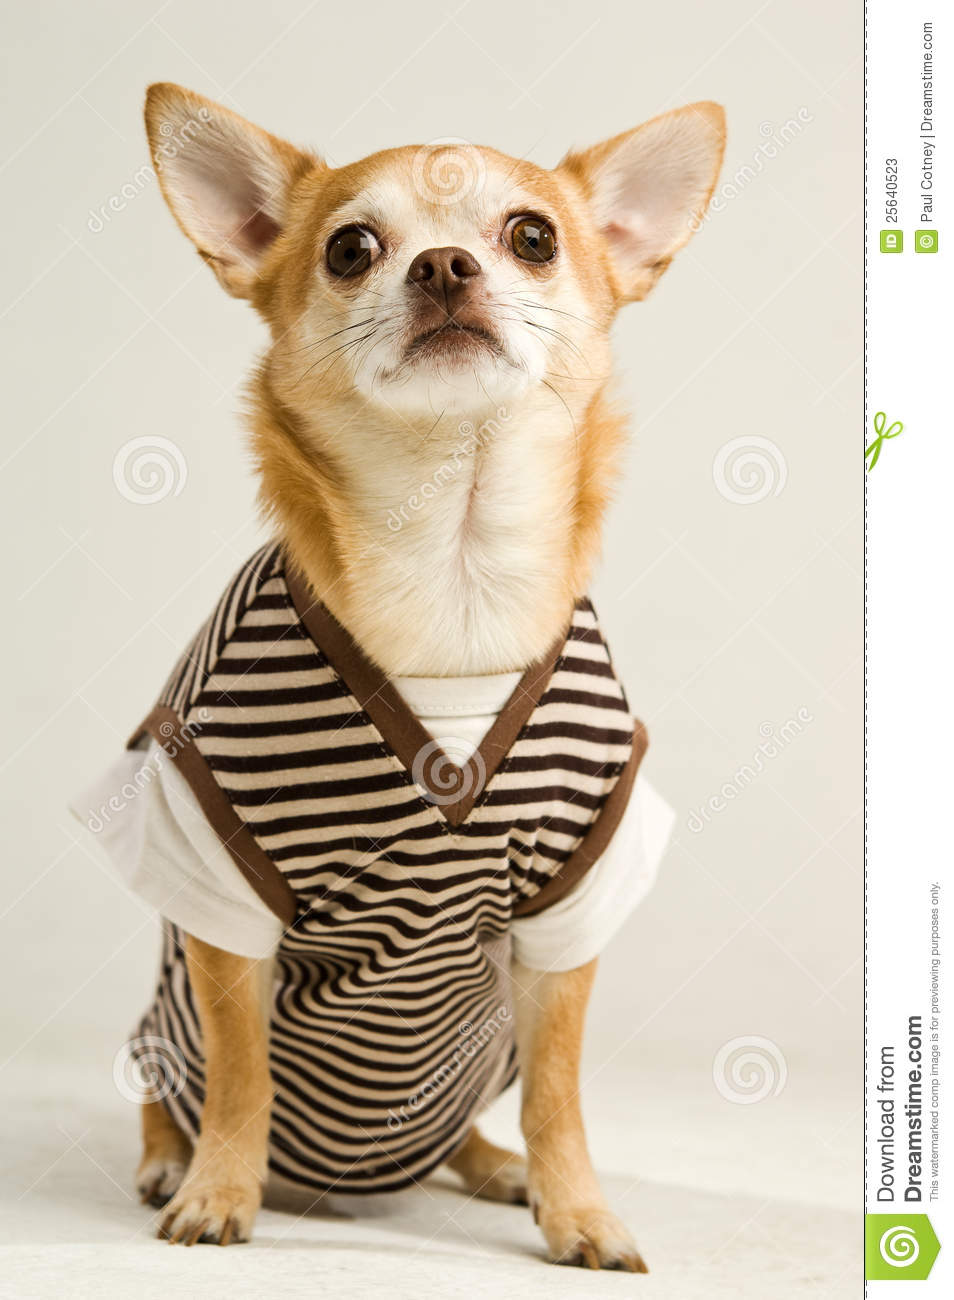 chihuahua wearing a stripey sweater vest stock photos image 25640523. Black Bedroom Furniture Sets. Home Design Ideas